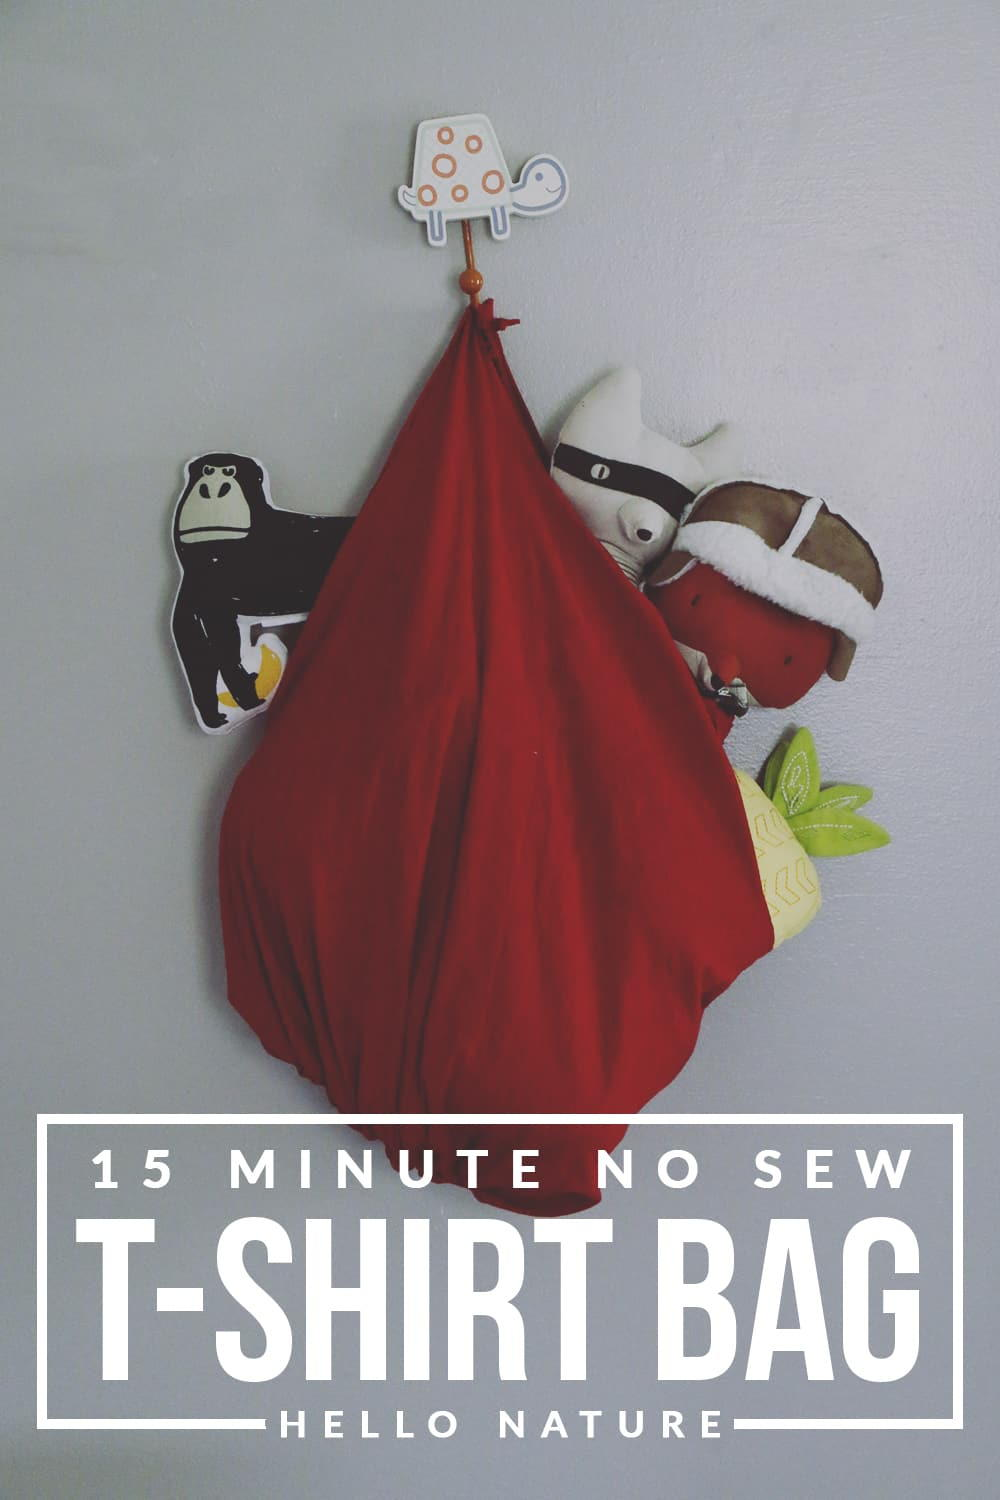 15 Minute No Sew T-Shirt Bag DIY